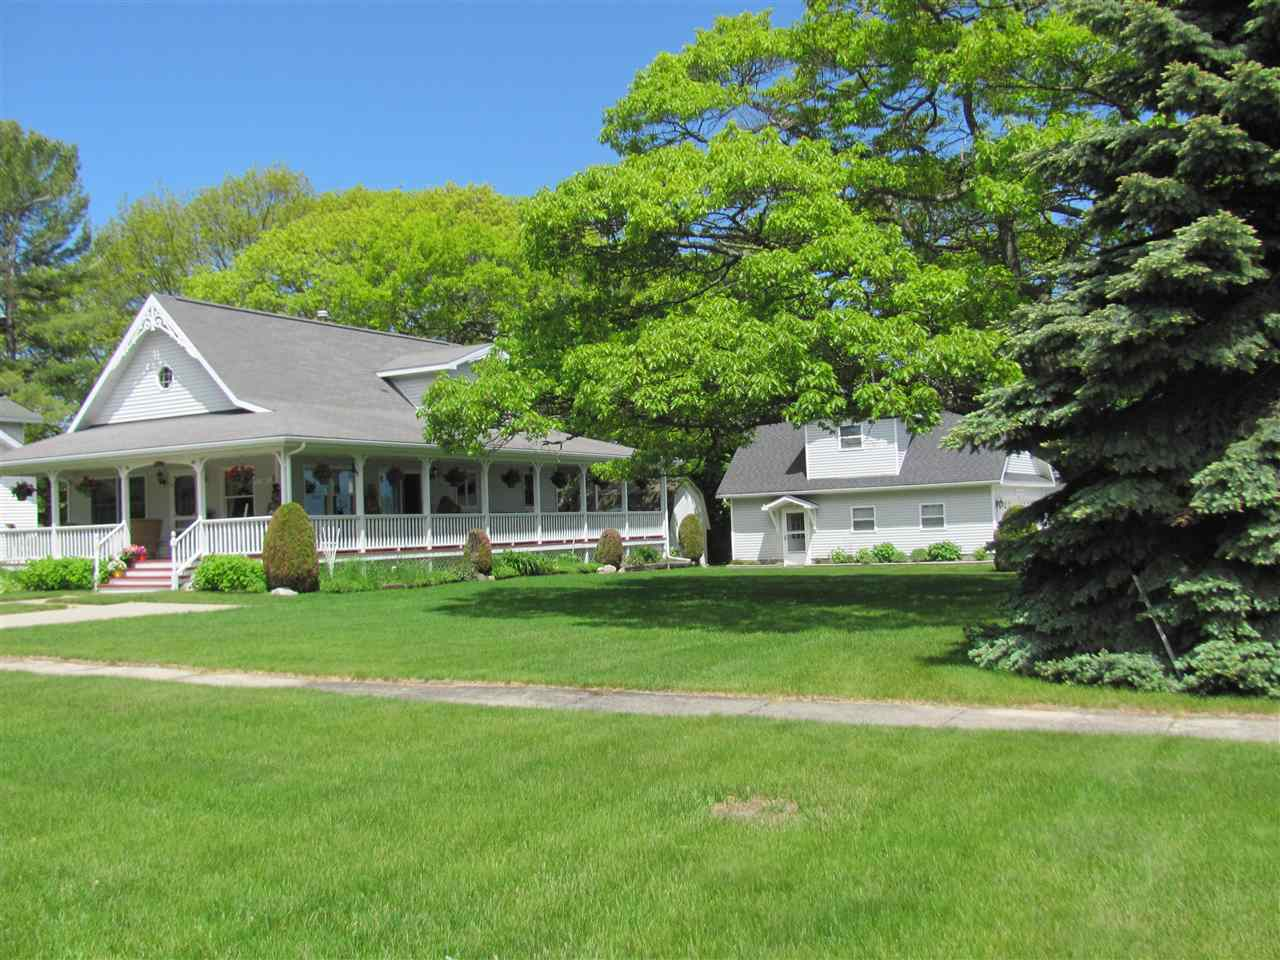 MLS 459474 - 305 E Sinclair , Mackinaw City, MI